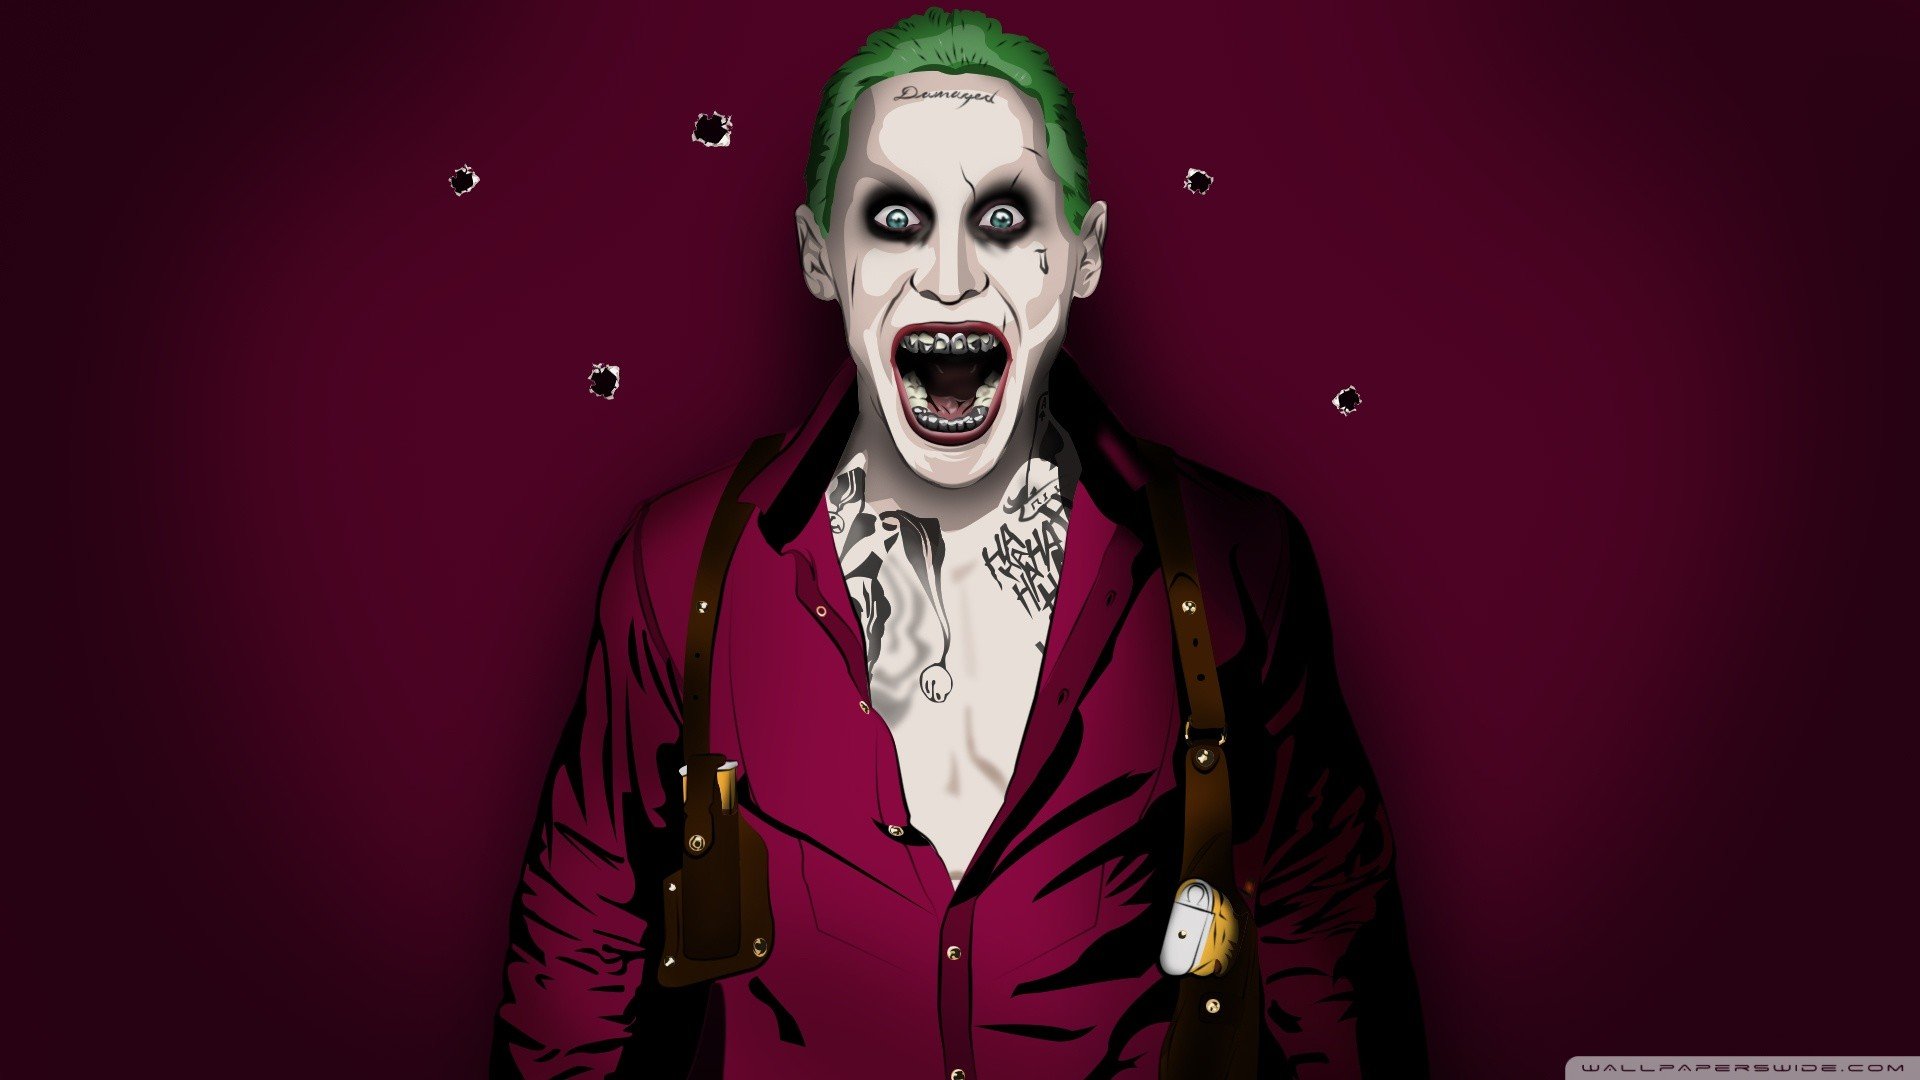 Hd Wallpapers For Mobile 1080x1920 With Quotes Joker Hd Wallpapers 1080p 80 Images